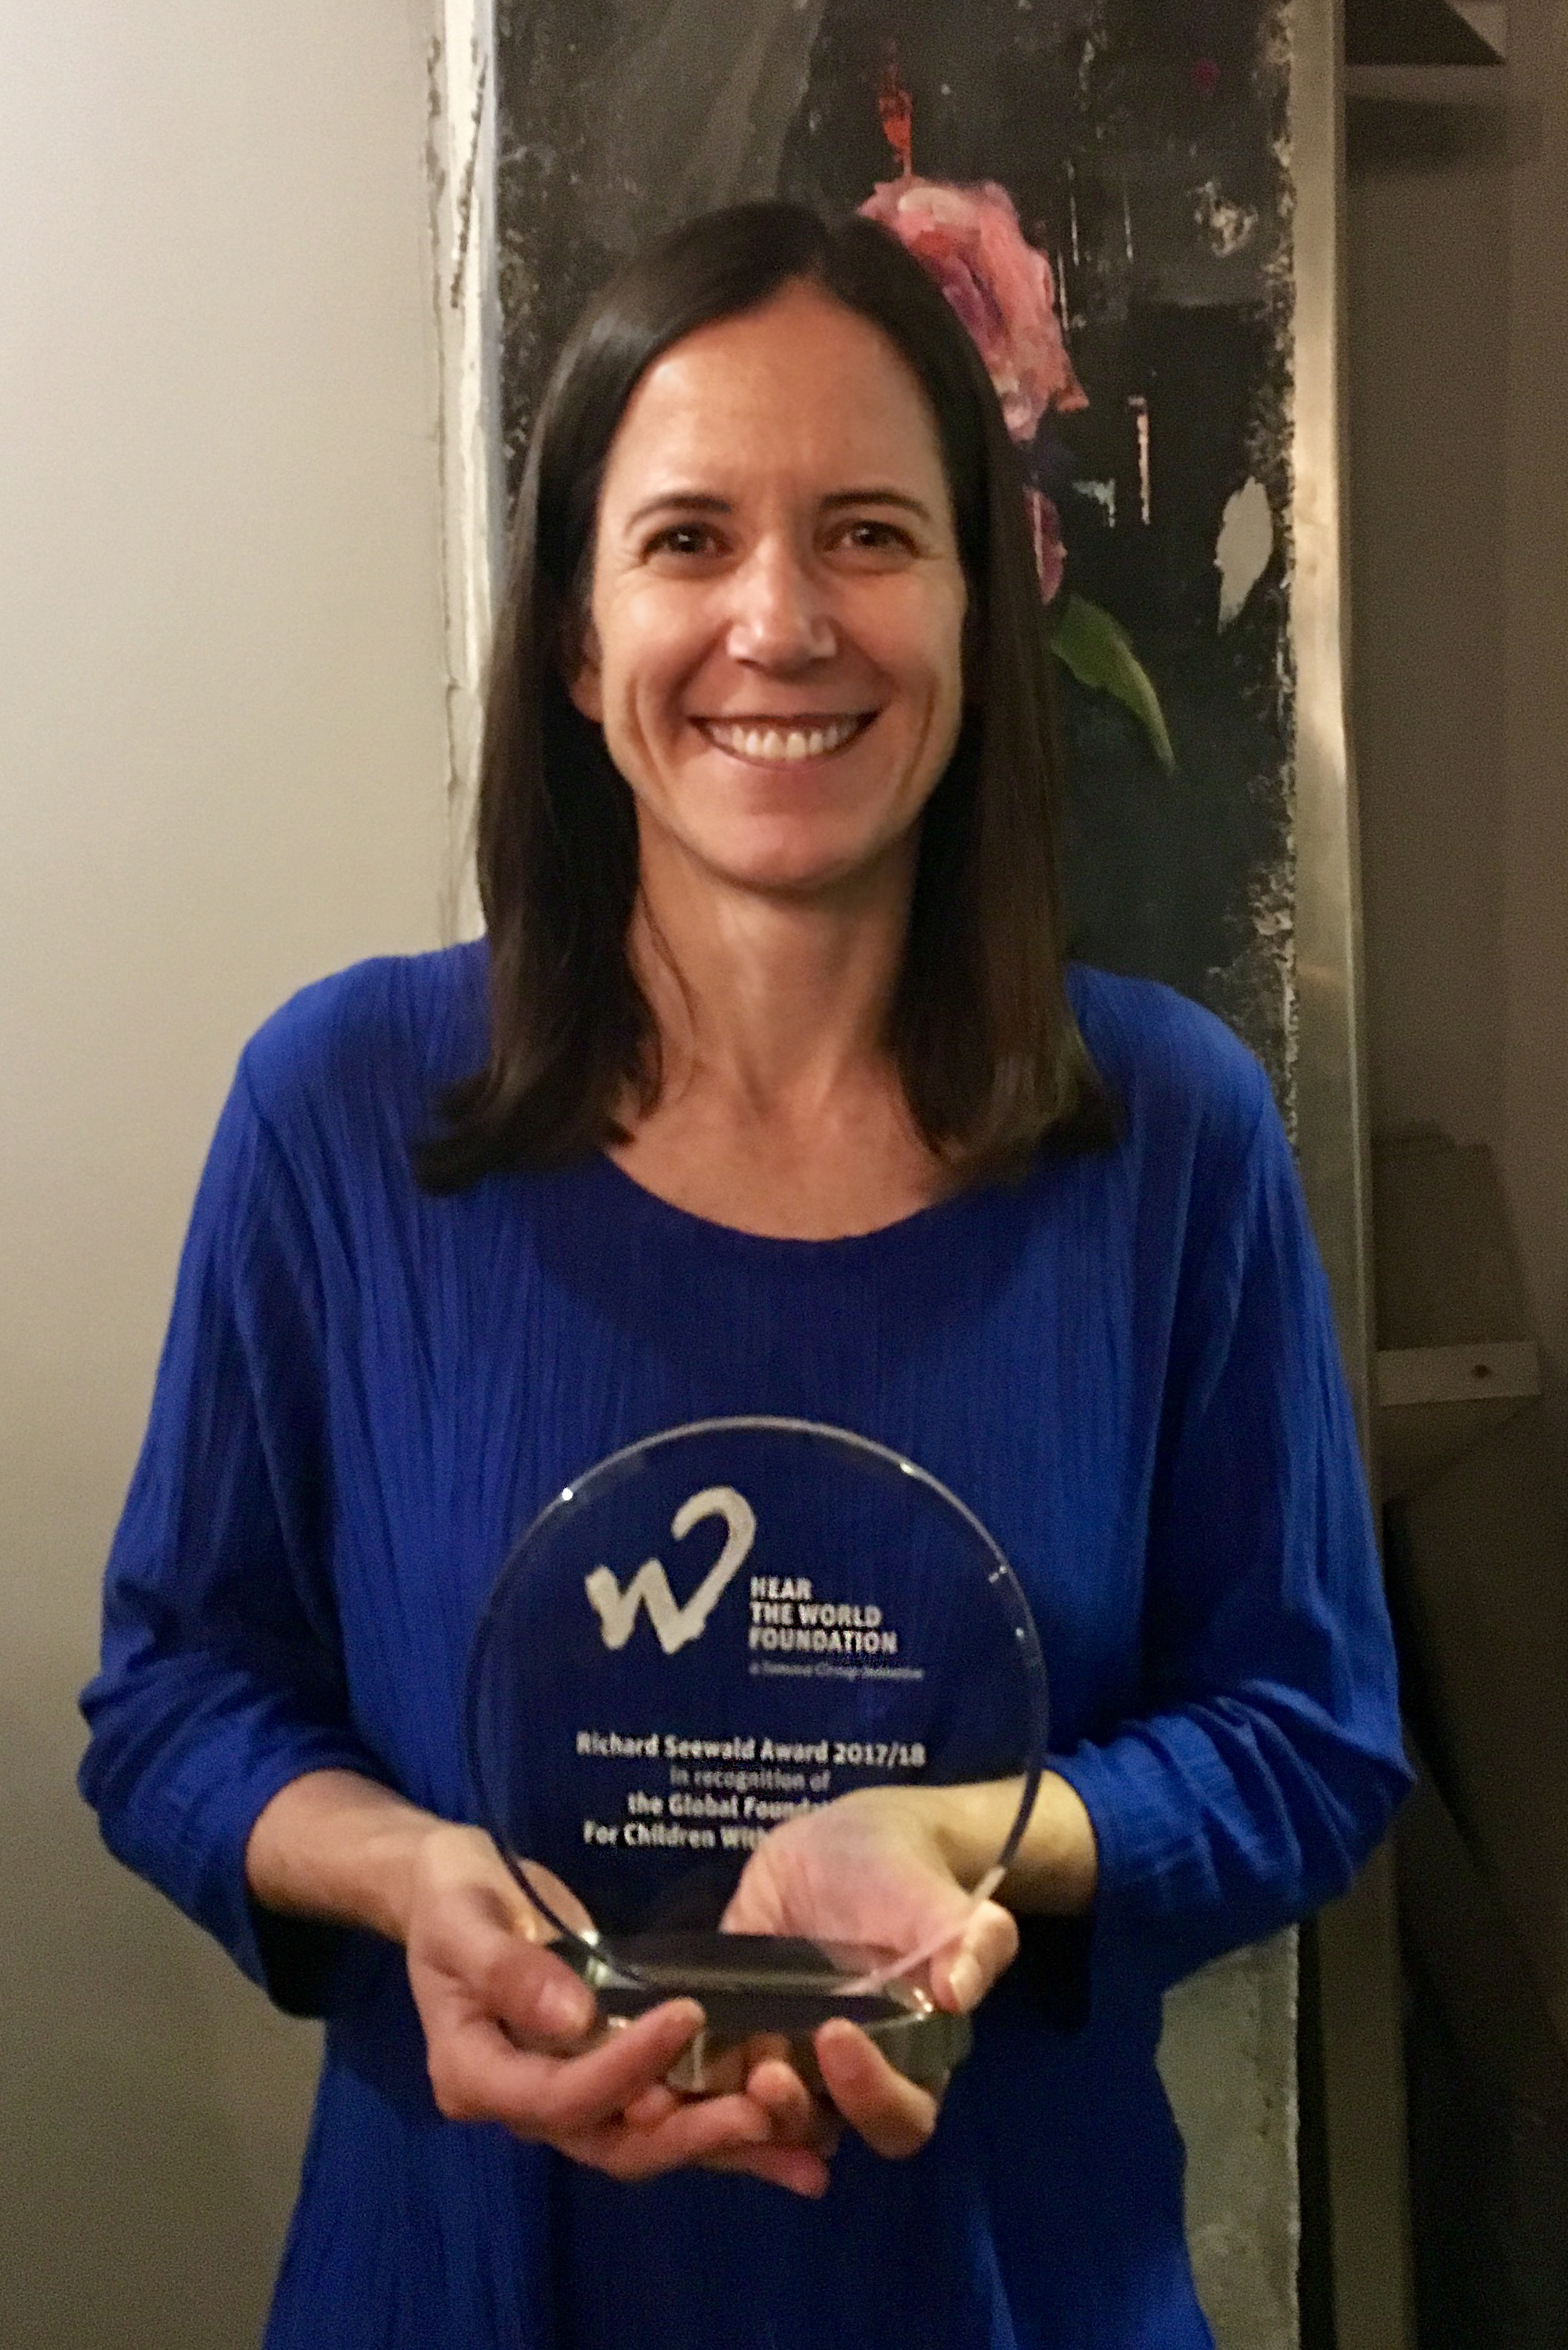 Hear-the-World-Foundation's-2017/18-Richard-Seewald-Award-goes-to-the-Global-Foundation-For-Children-With-Hearing-loss-Hear-the-World-Foundation